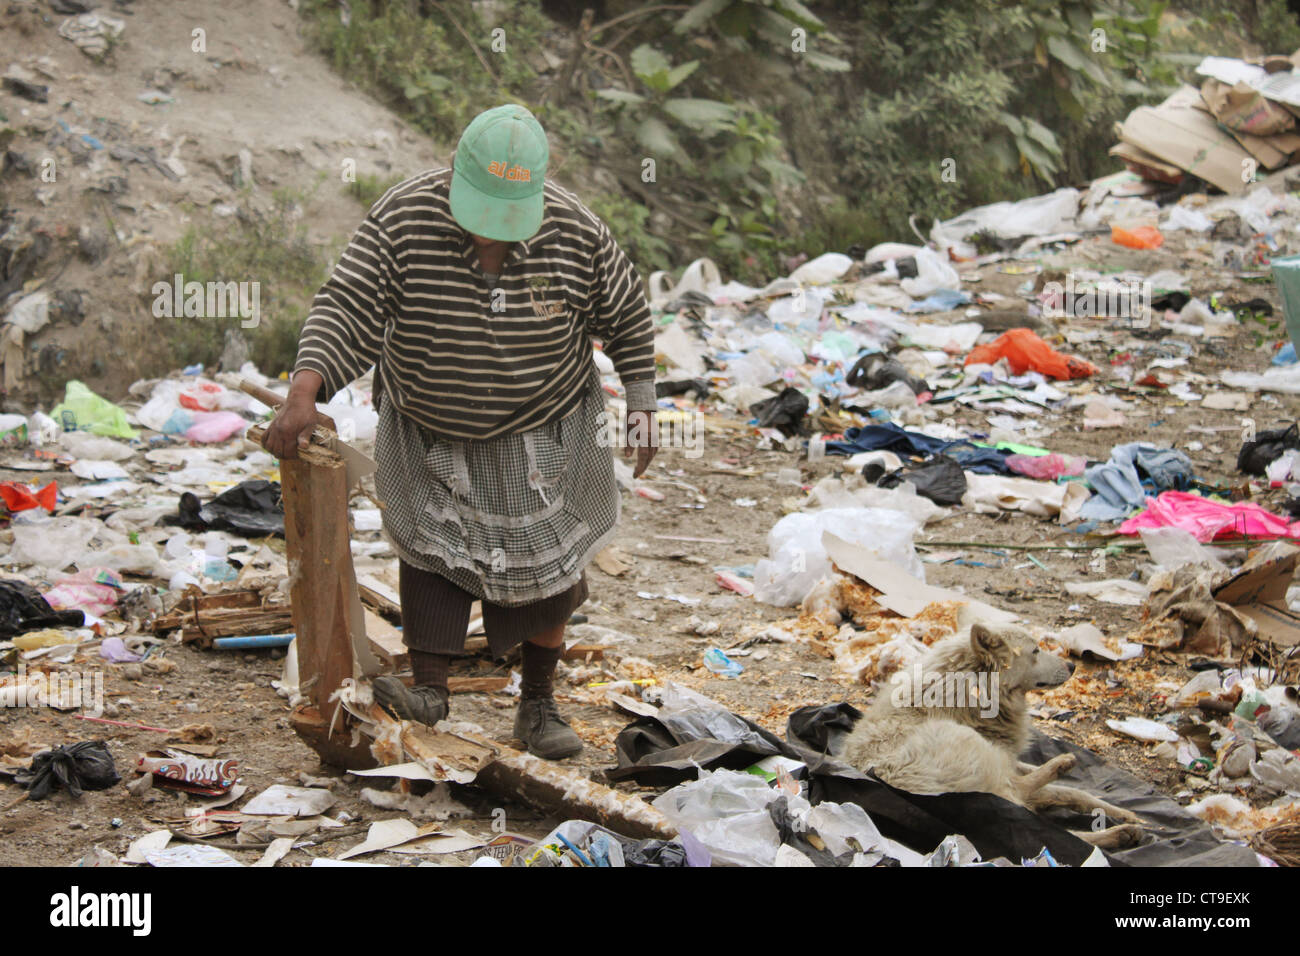 Woman scavenging in Landfill in Guatemala City.  Face obscured by cap. - Stock Image